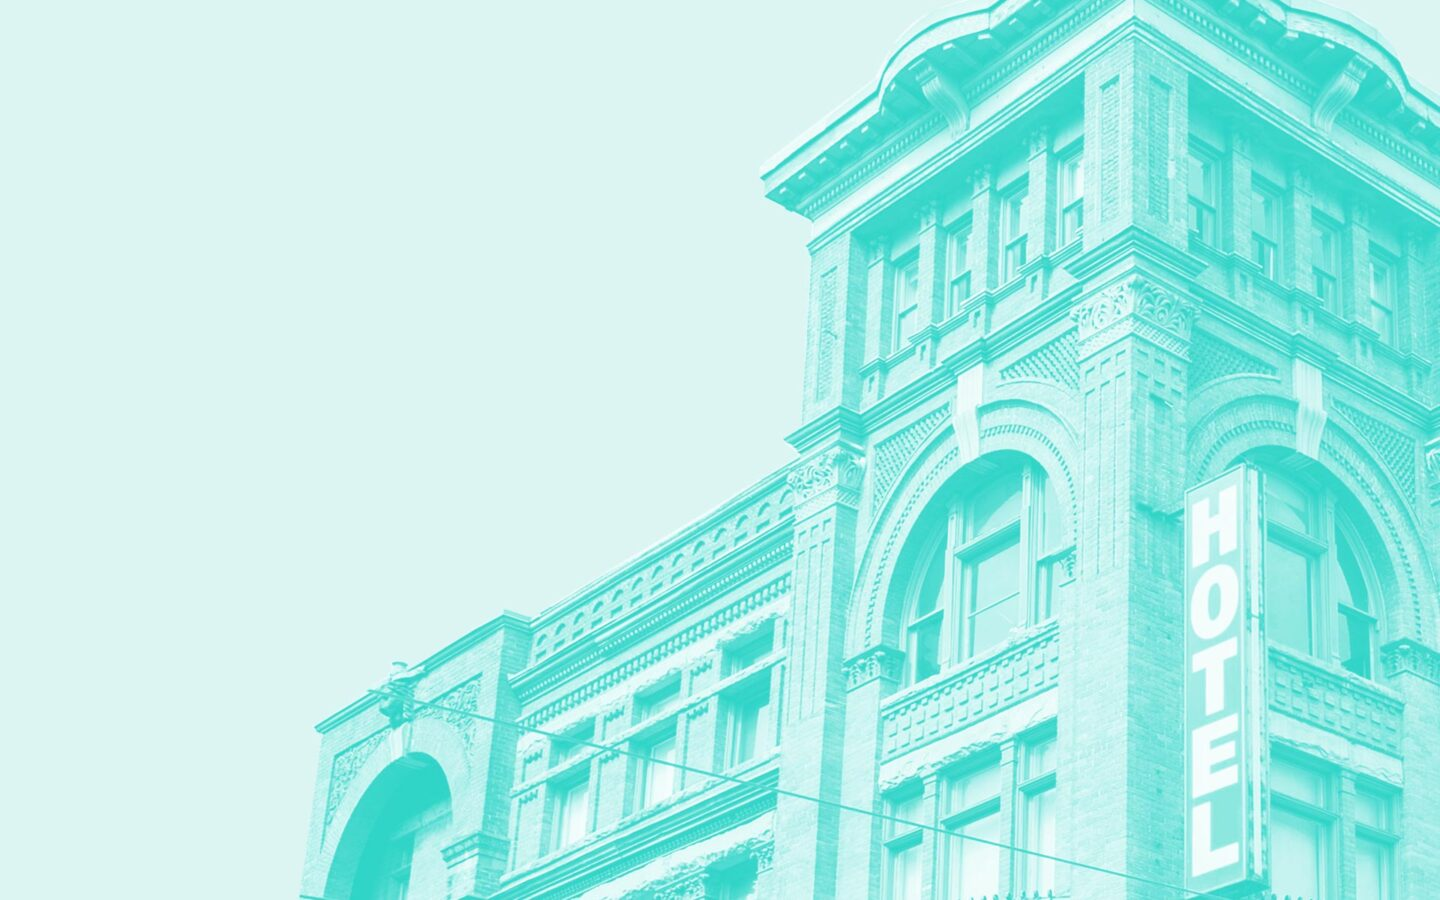 blue cutout exterior image of a heritage brick boutique hotel